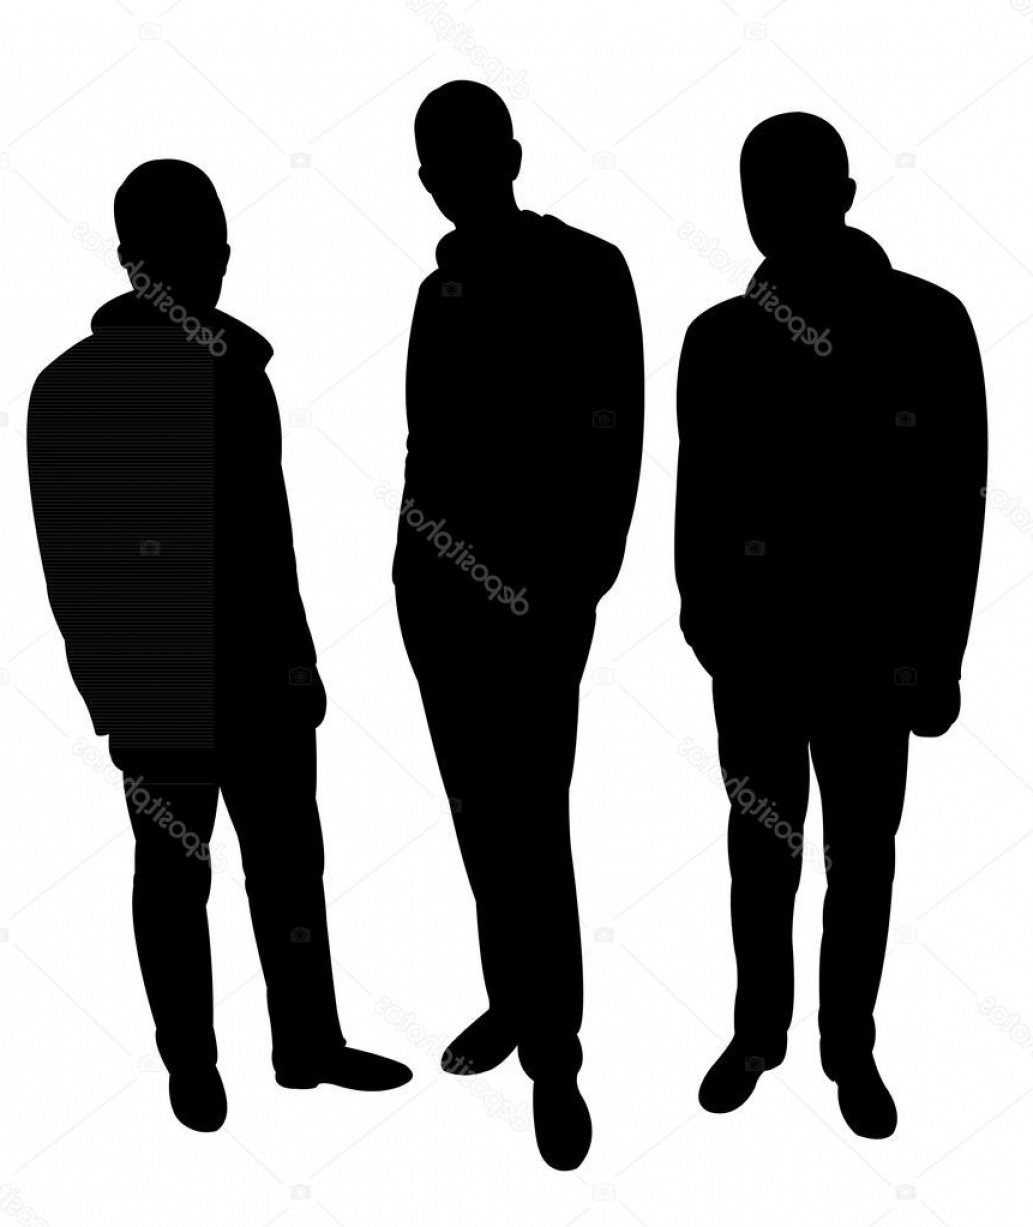 1033x1227 Stock Illustration Three Men Silhouette Vector Shopatcloth